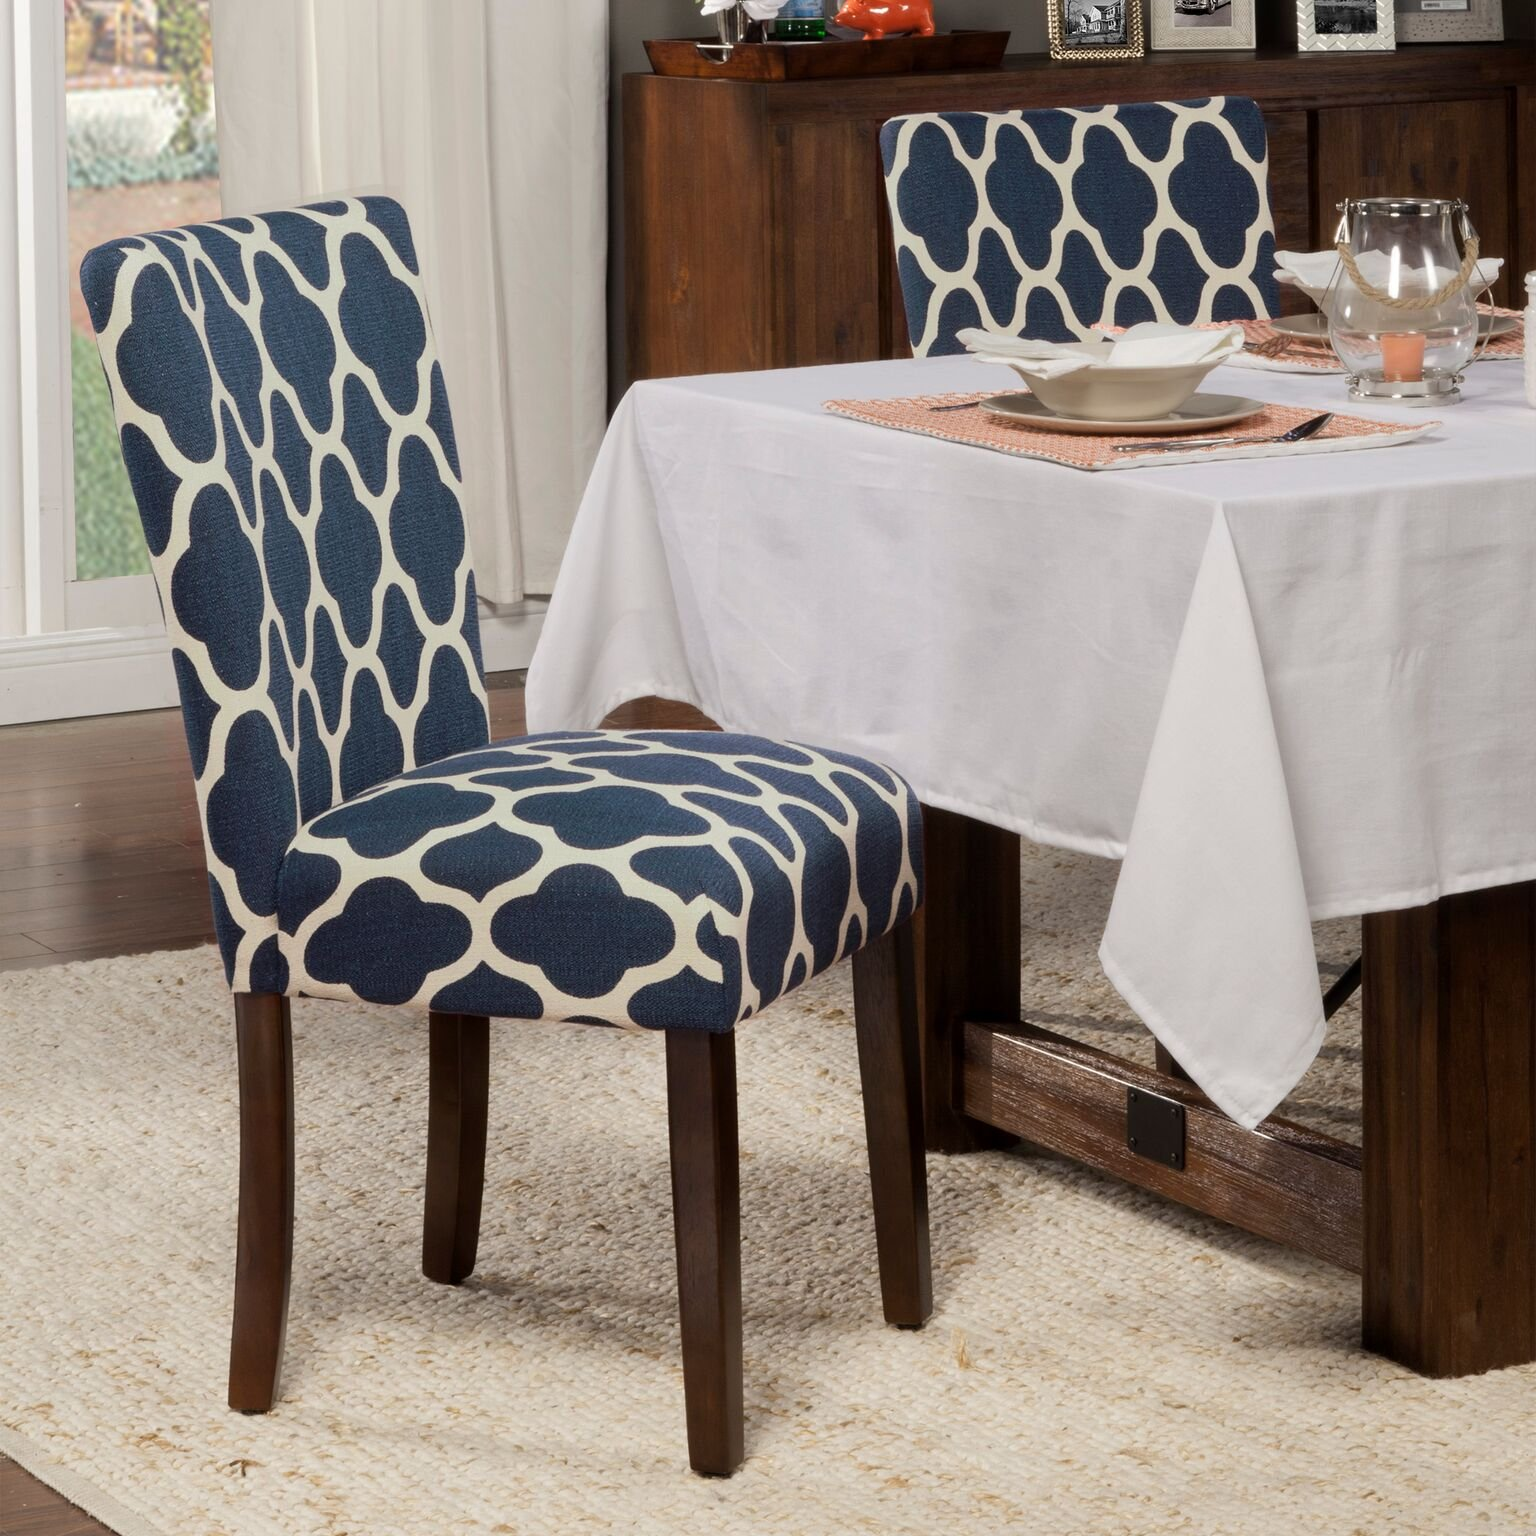 HomePop Parsons Classic Upholstered Accent Dining Chair, Set of 2, Navy and Cream Geometric by HomePop (Image #3)